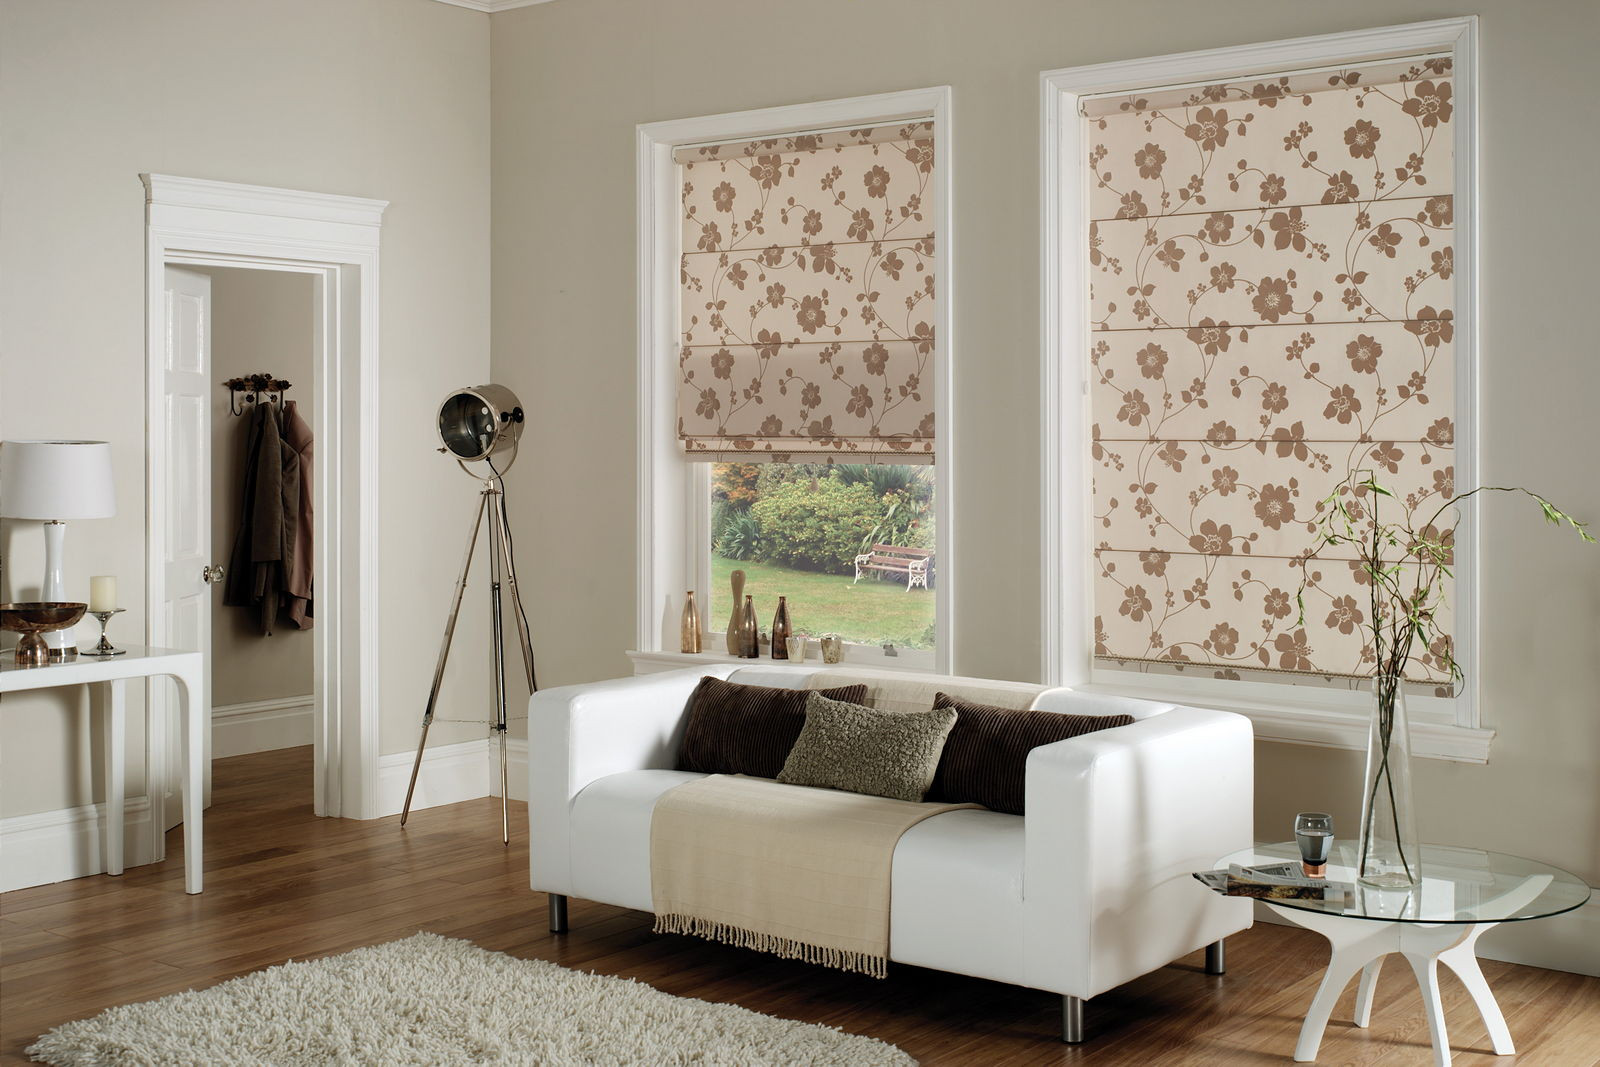 Best ideas about Curtains For Living Room . Save or Pin Living Room Curtains the best photos of curtains design Now.